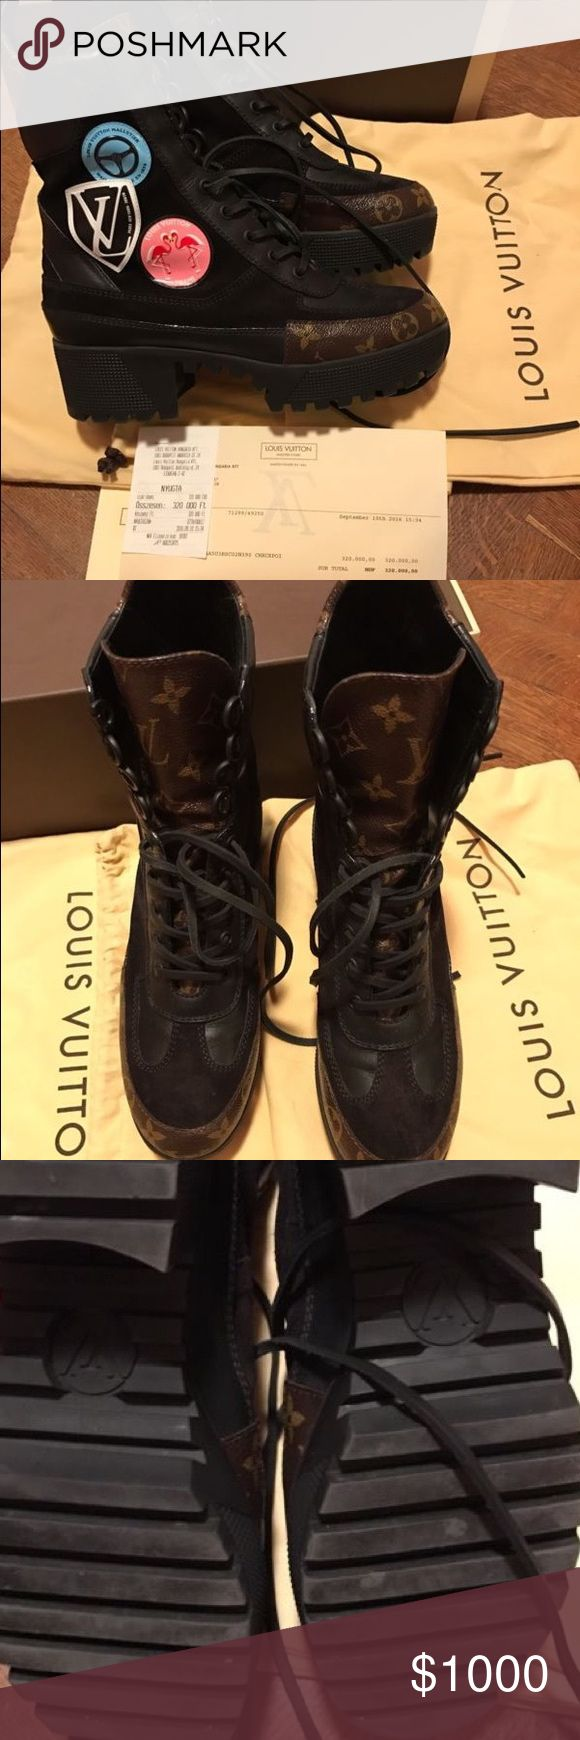 LV Desert Combat Boots Limited edition slightly worn but in top notch condition! Orange LV Box, dust bag and receipt included with this purchase. Any questions or concerns feel free to email missconsignmentjunkie@gmail.com Item Available CashAPP Louis Vuitton Shoes Combat & Moto Boots